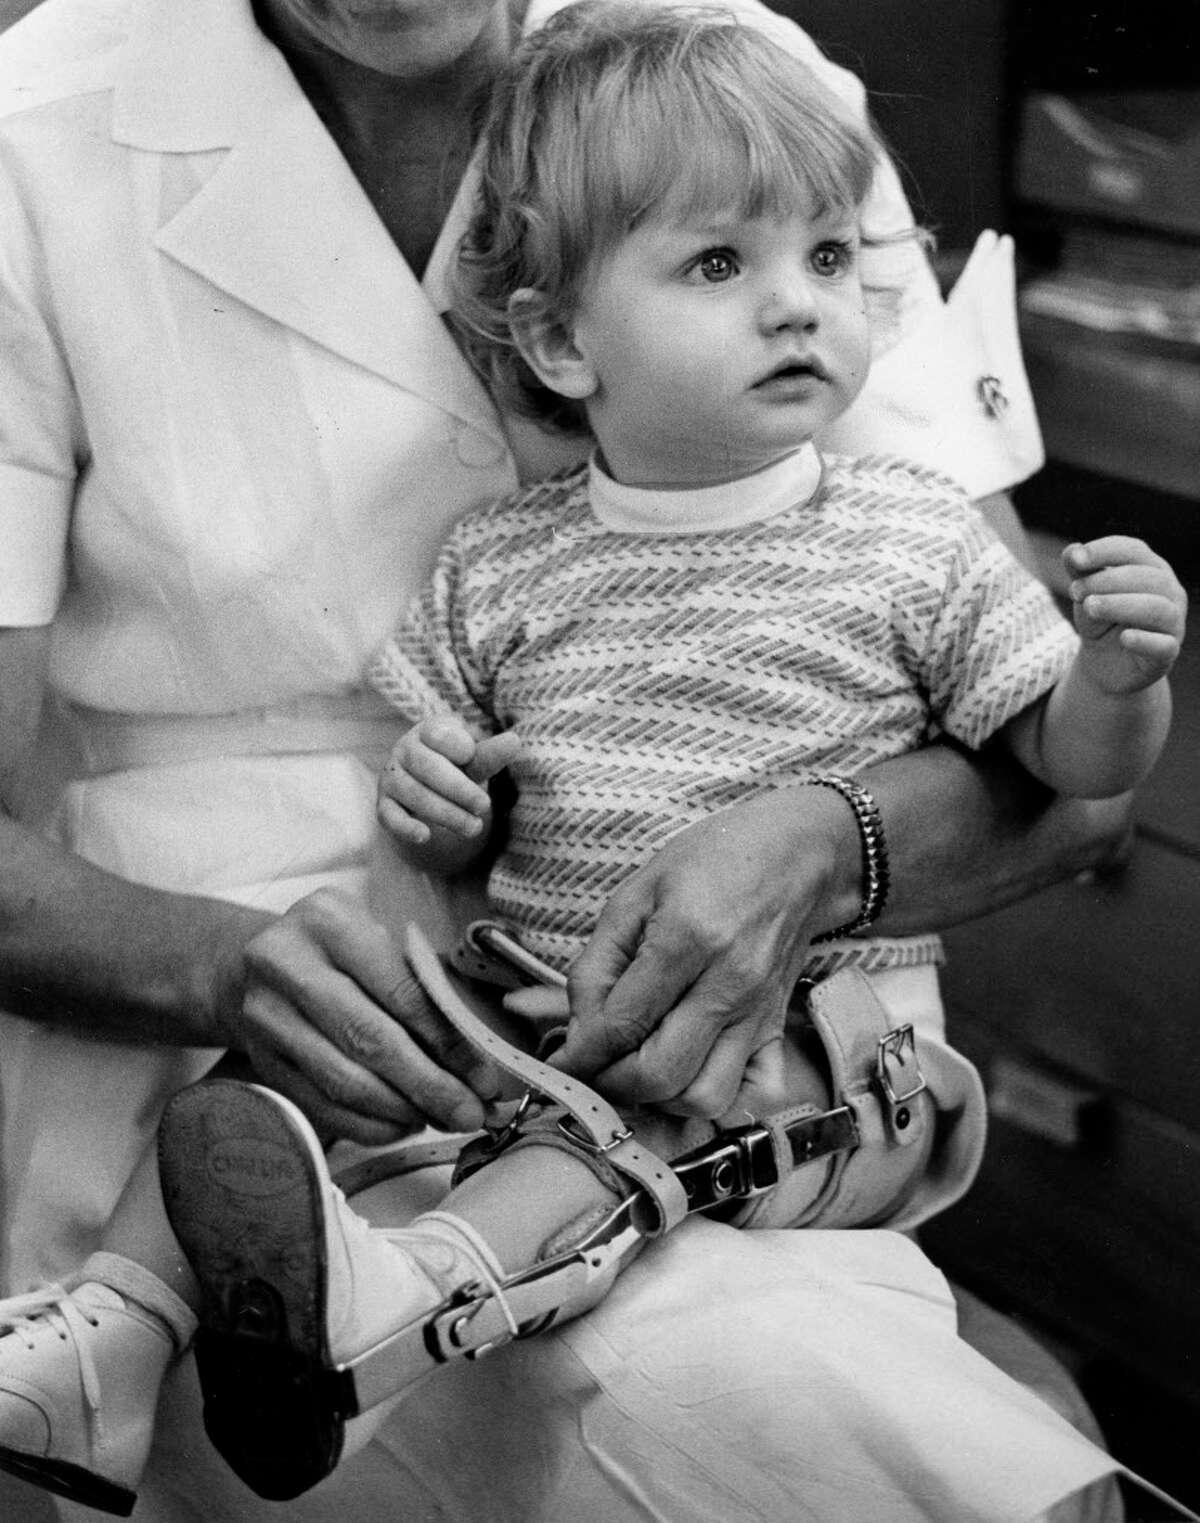 Sabrina Sustaita, who was 10 months old when photographed in 1962, was among the polio survivors who required leg braces.